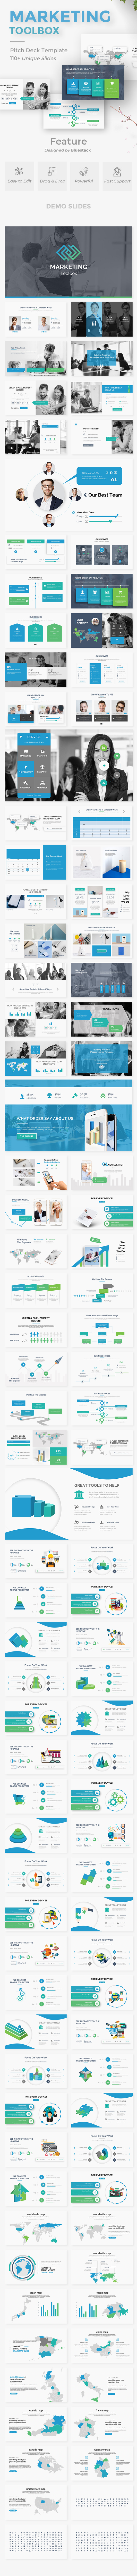 Marketing ToolBox Multipurpose Design Powerpoint Template - Business PowerPoint Templates